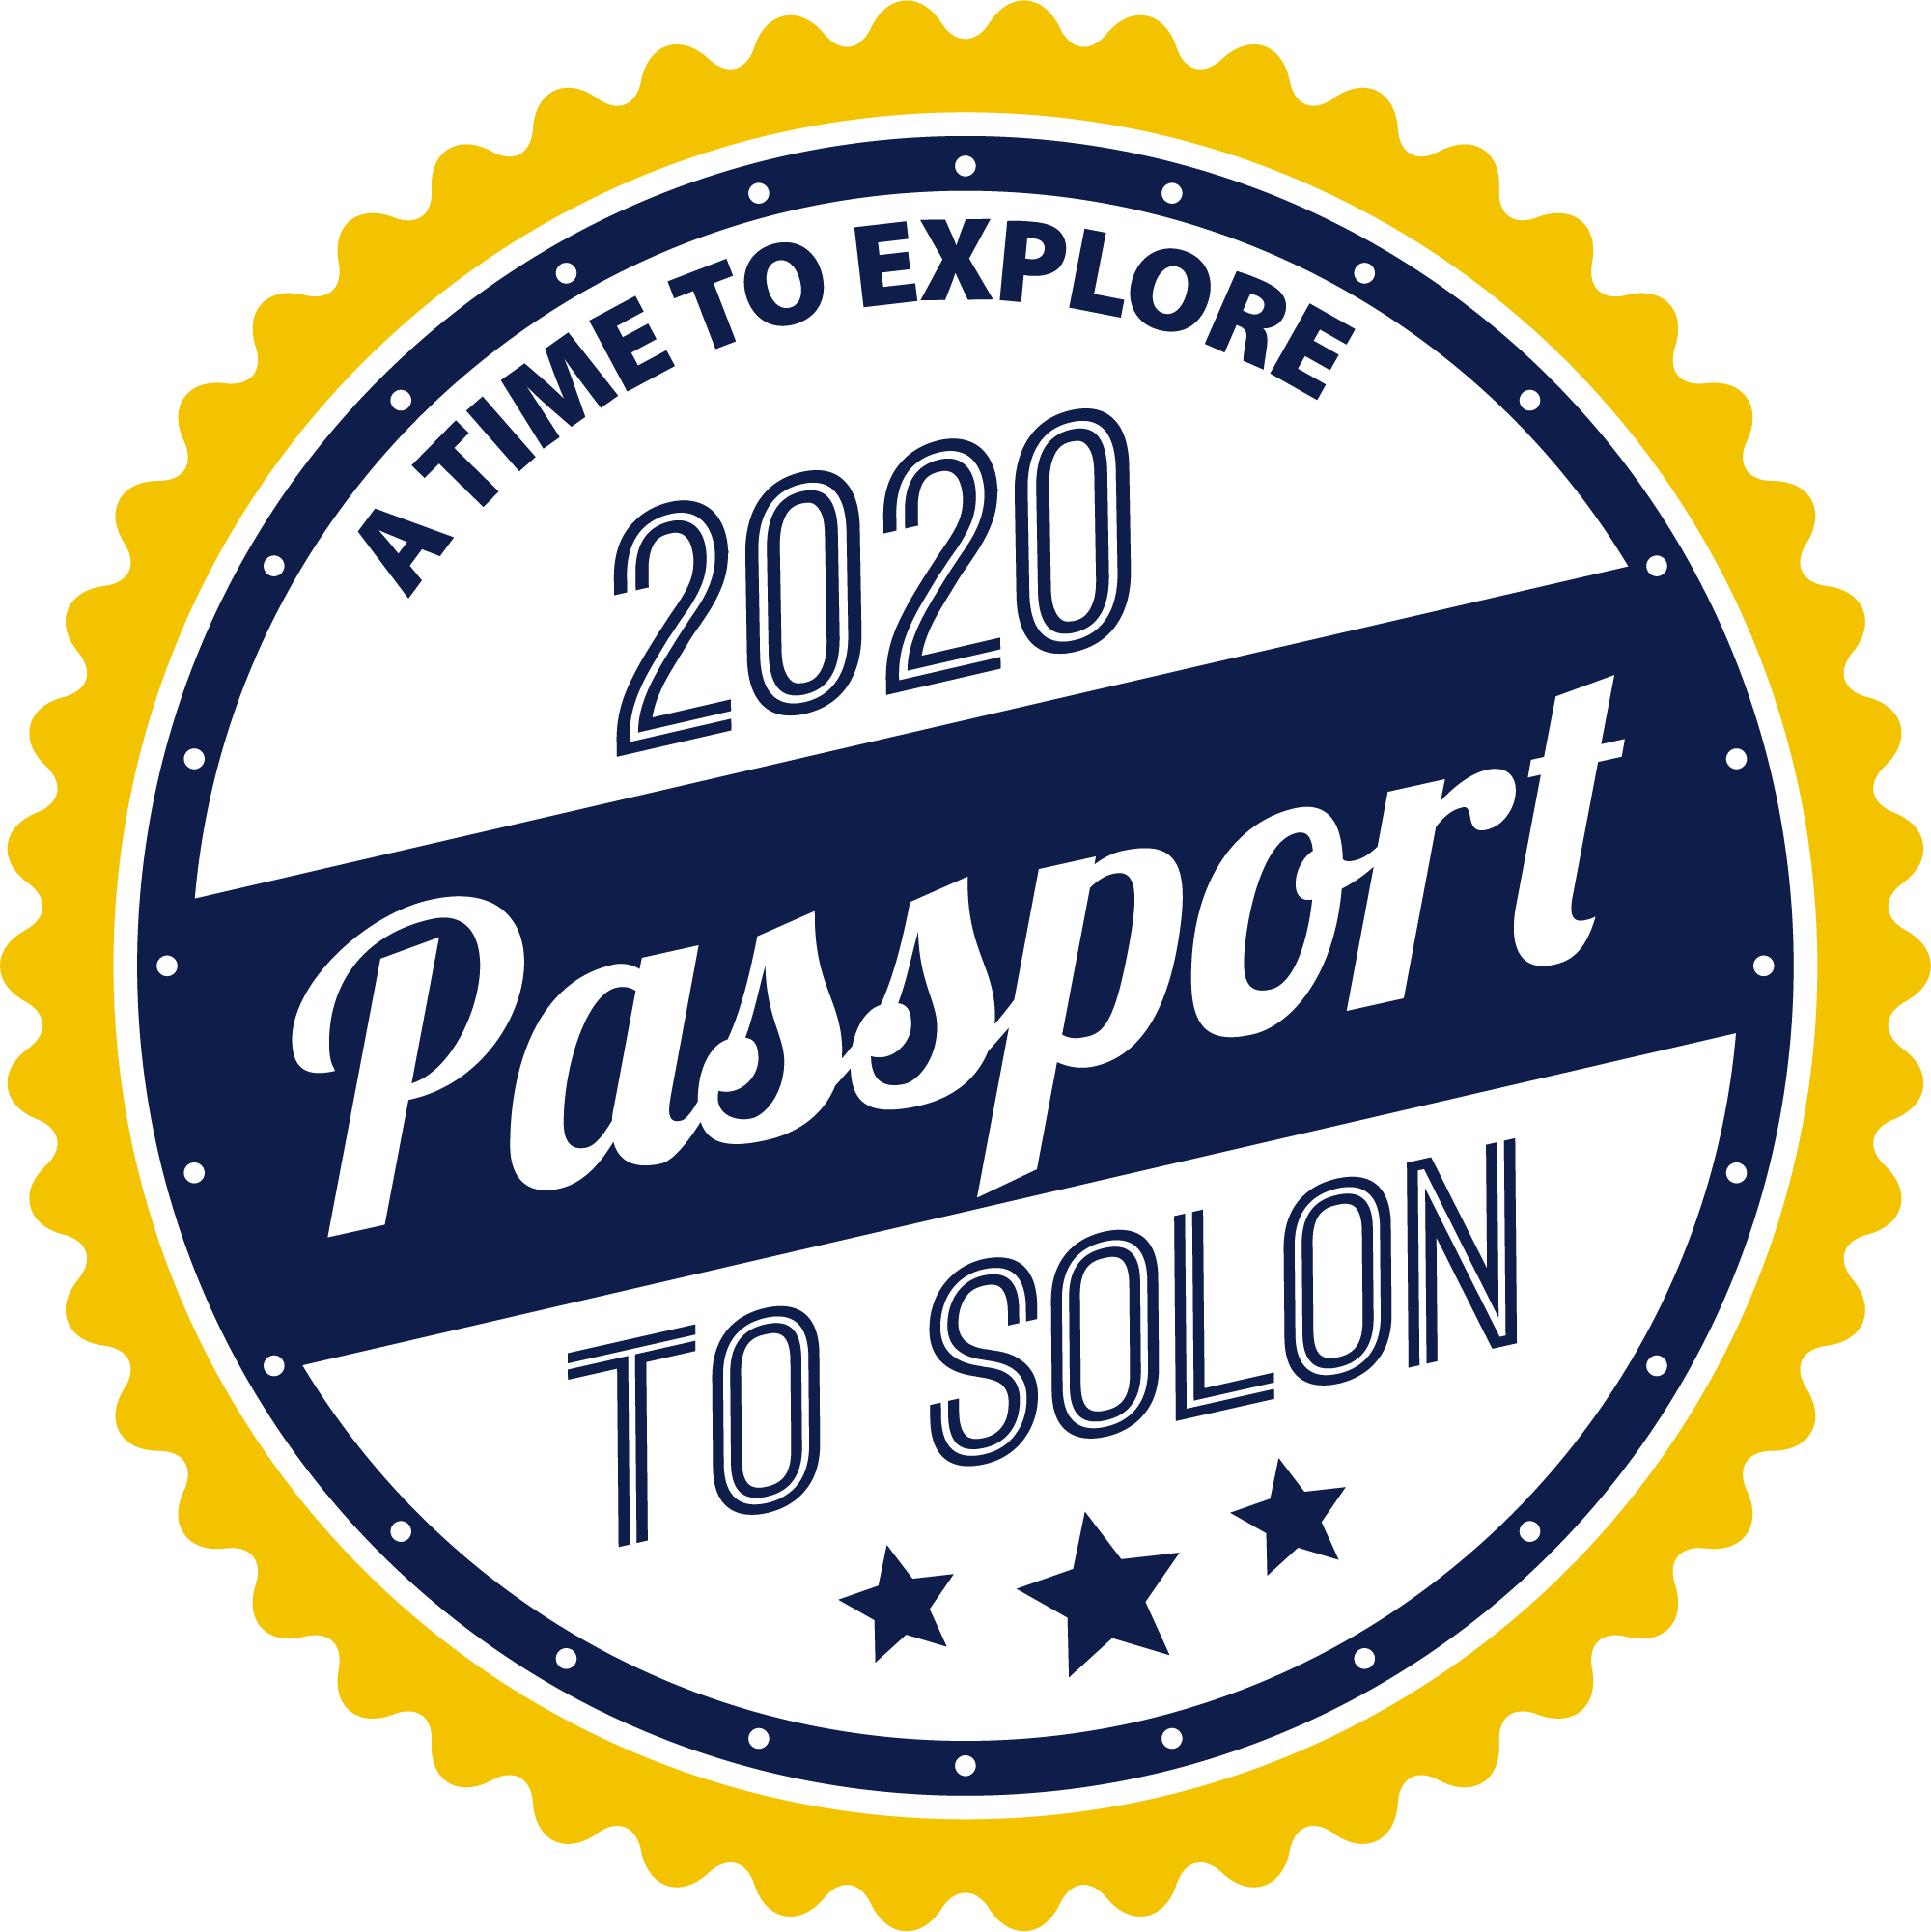 Passport to Solon Stamp